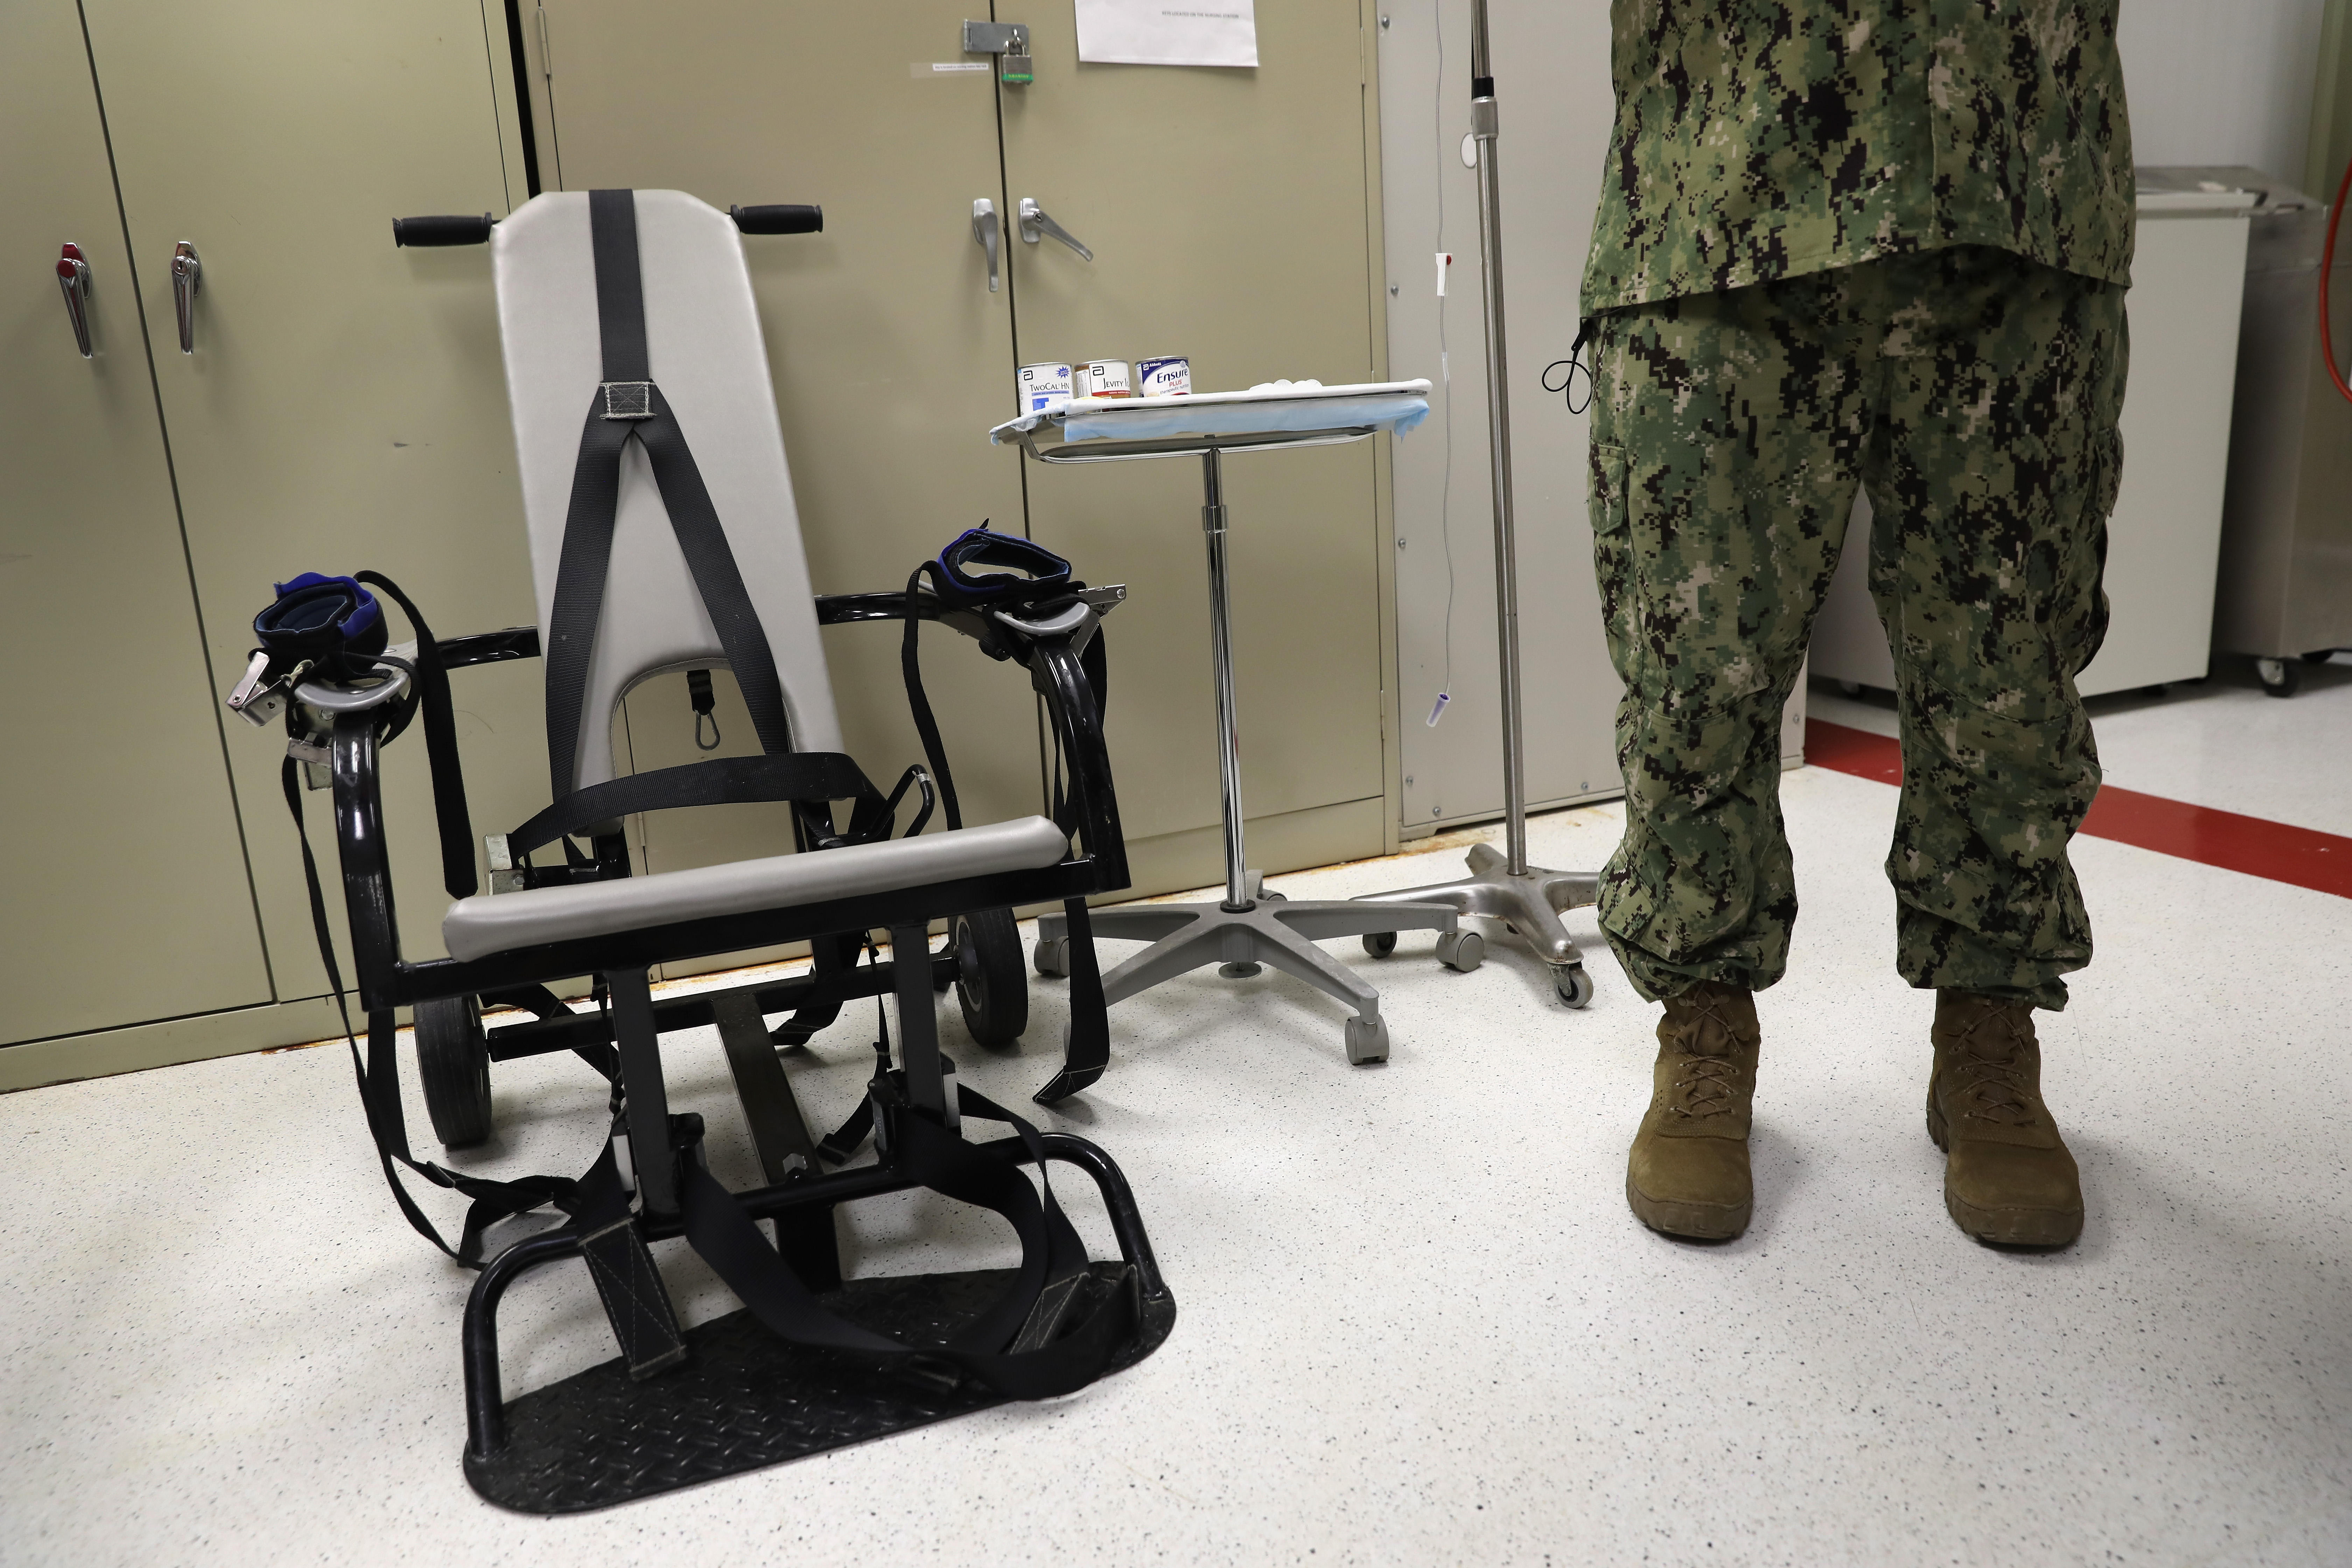 Small Office Chair Guantánamo - An Inside Look At Life In Guantánamo